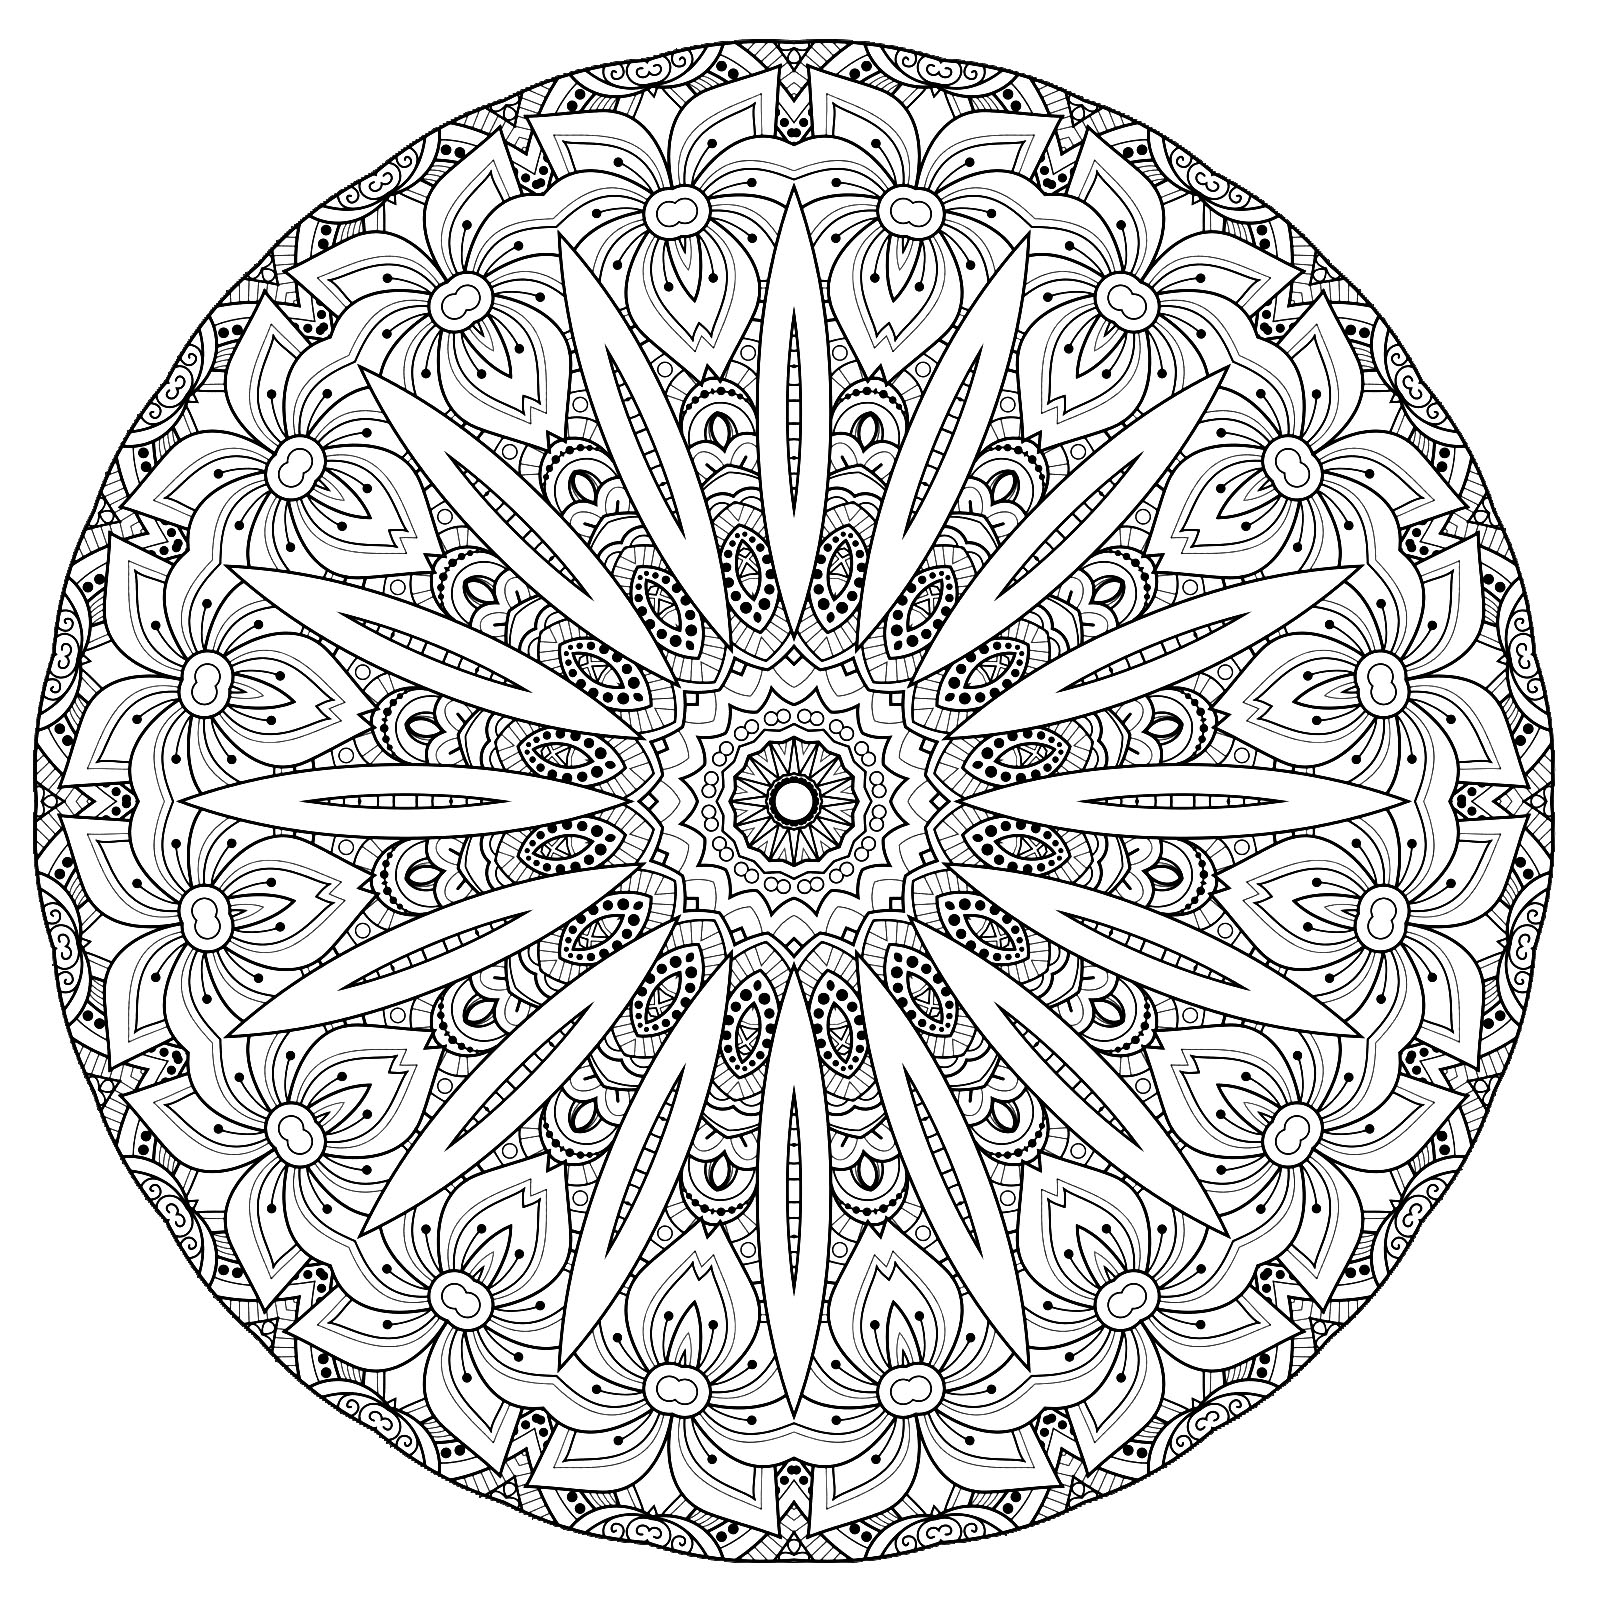 coloring mandala with color cute simple mandala looking like a flower  mandalas with color coloring mandala with